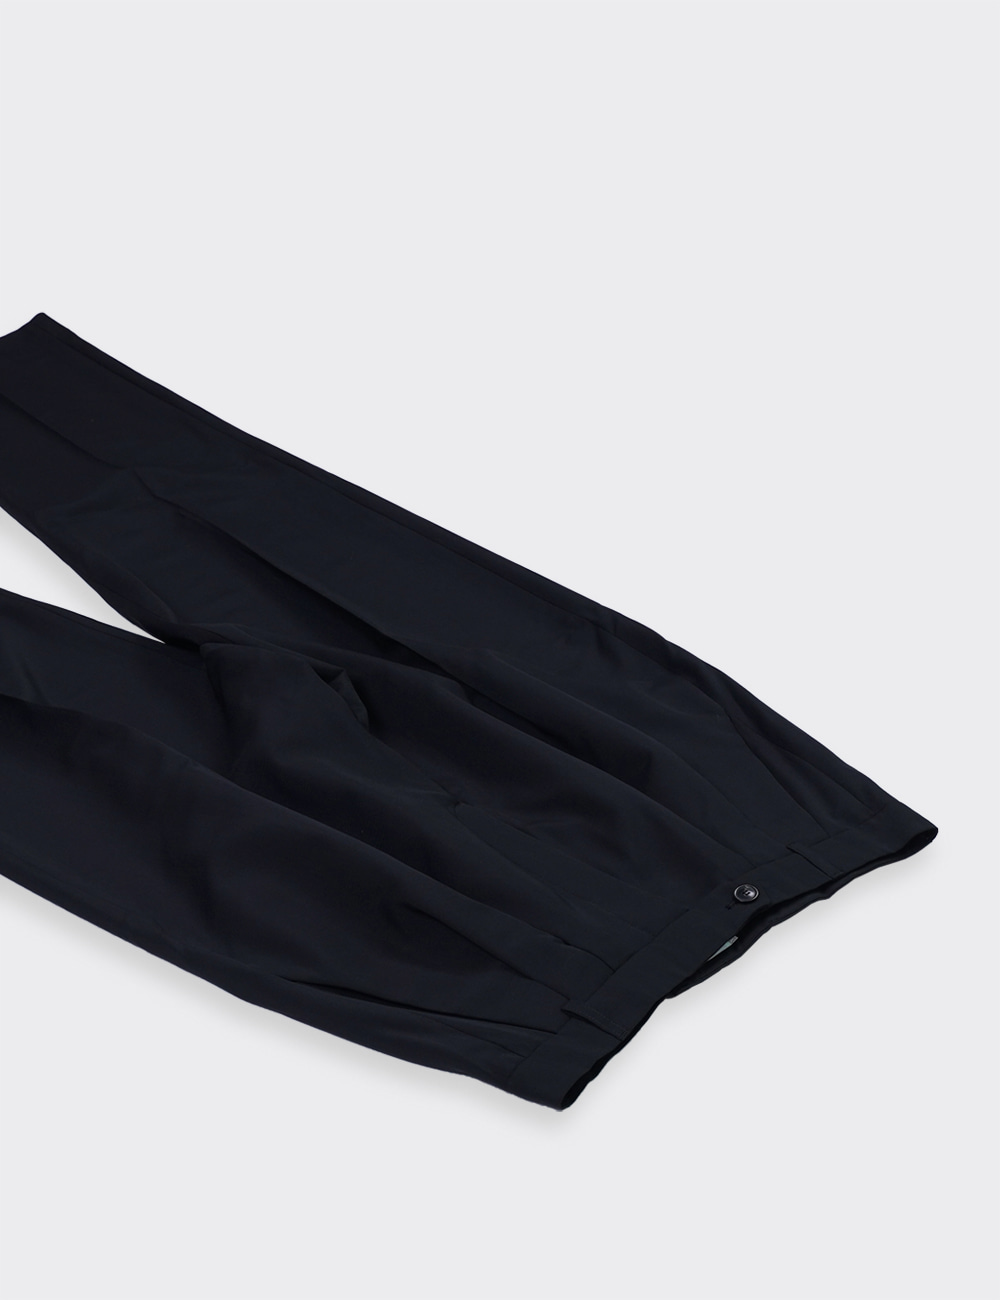 lownn : PANTARON(PANTS) BAGGY V2 (BLACK)